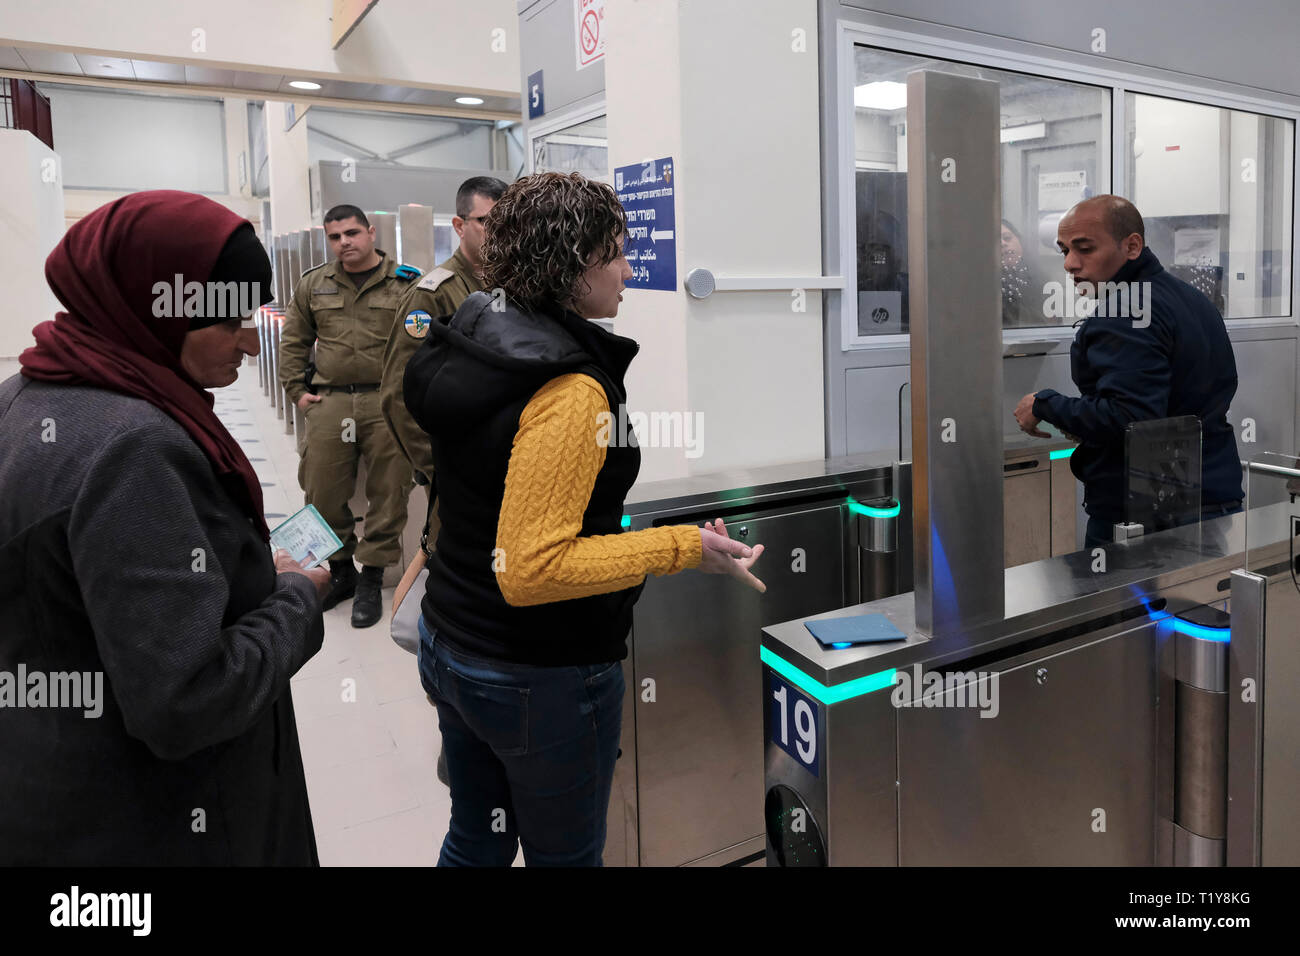 Qalandya, ISRAEL 28th March - Palestinians on their way to Jerusalem crossing turnstile gate with bio-metric system at the newly renovated Kalandia or Qalandiya Checkpoint between Jerusalem and Ramallah on 28 March 2019. The Qalandiya Checkpoint's $11 million renovation was carried out in order to enhance the commute of thousands of Palestinians every day, mostly with the help of new identification stations with improved technology. Credit: Eddie Gerald/Alamy Live News - Stock Image